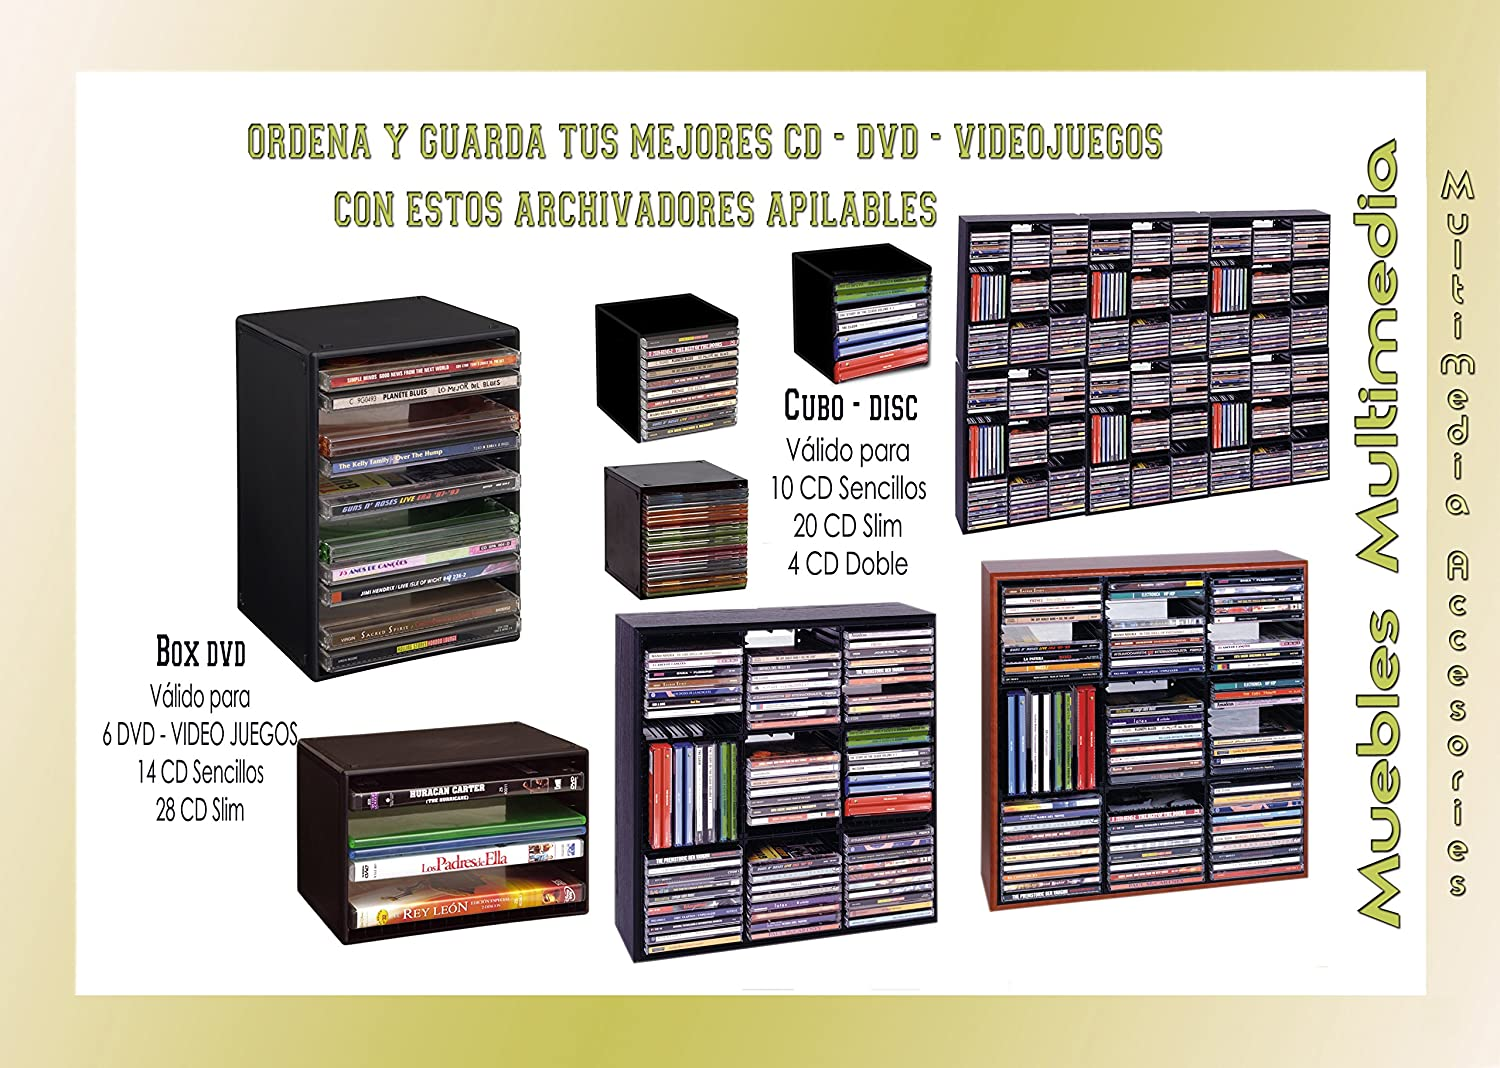 Clements Archivador CuboDics 10 CD (5 unidades para archivar 50 CD Sencillos ó 20 Dobles): Amazon.es: Hogar